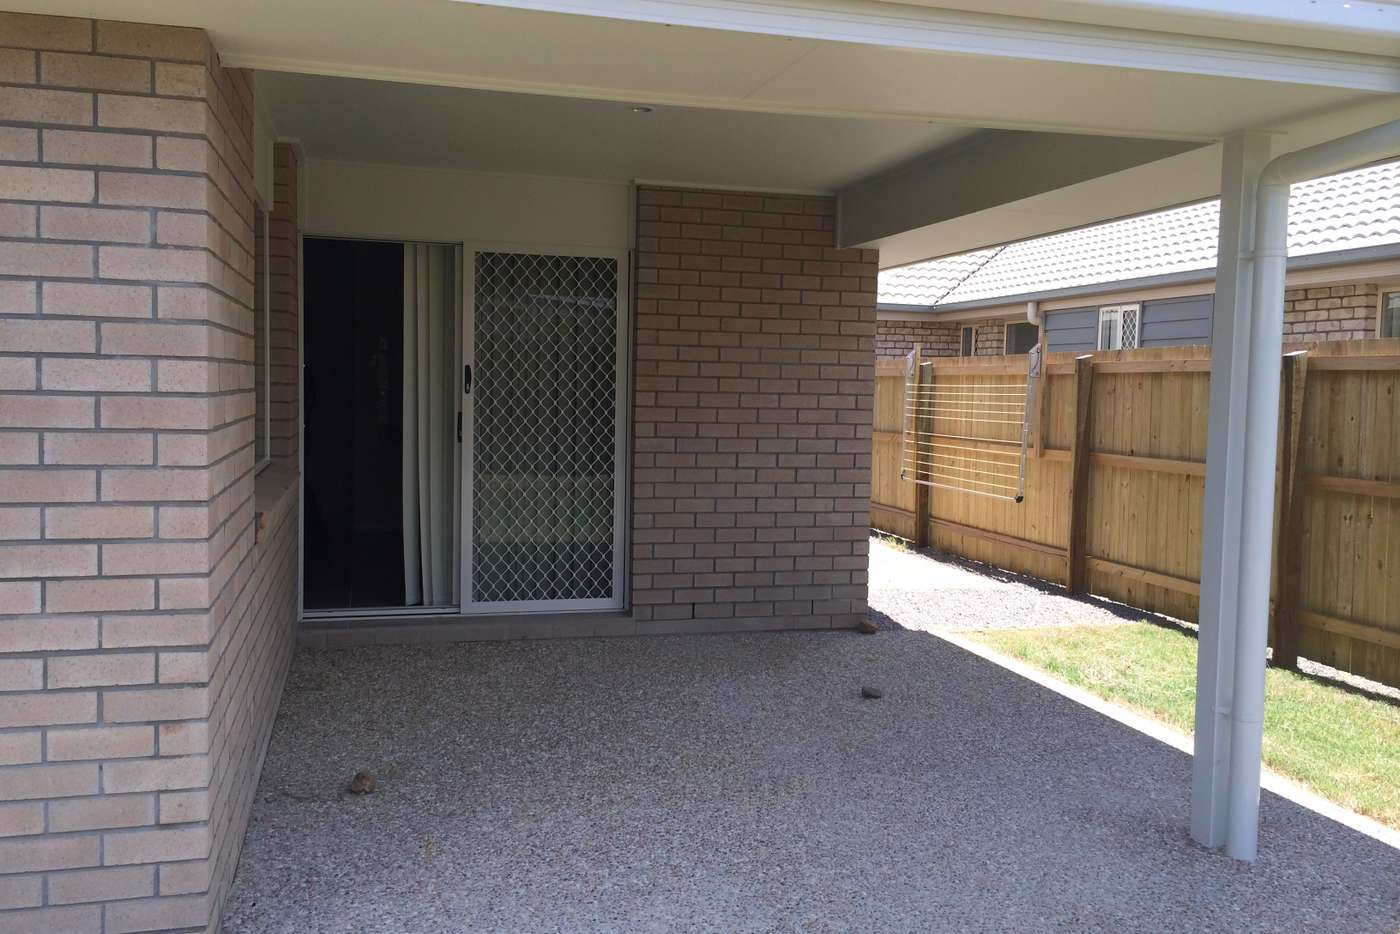 Sixth view of Homely house listing, 14 Wormwell Court, Caboolture QLD 4510